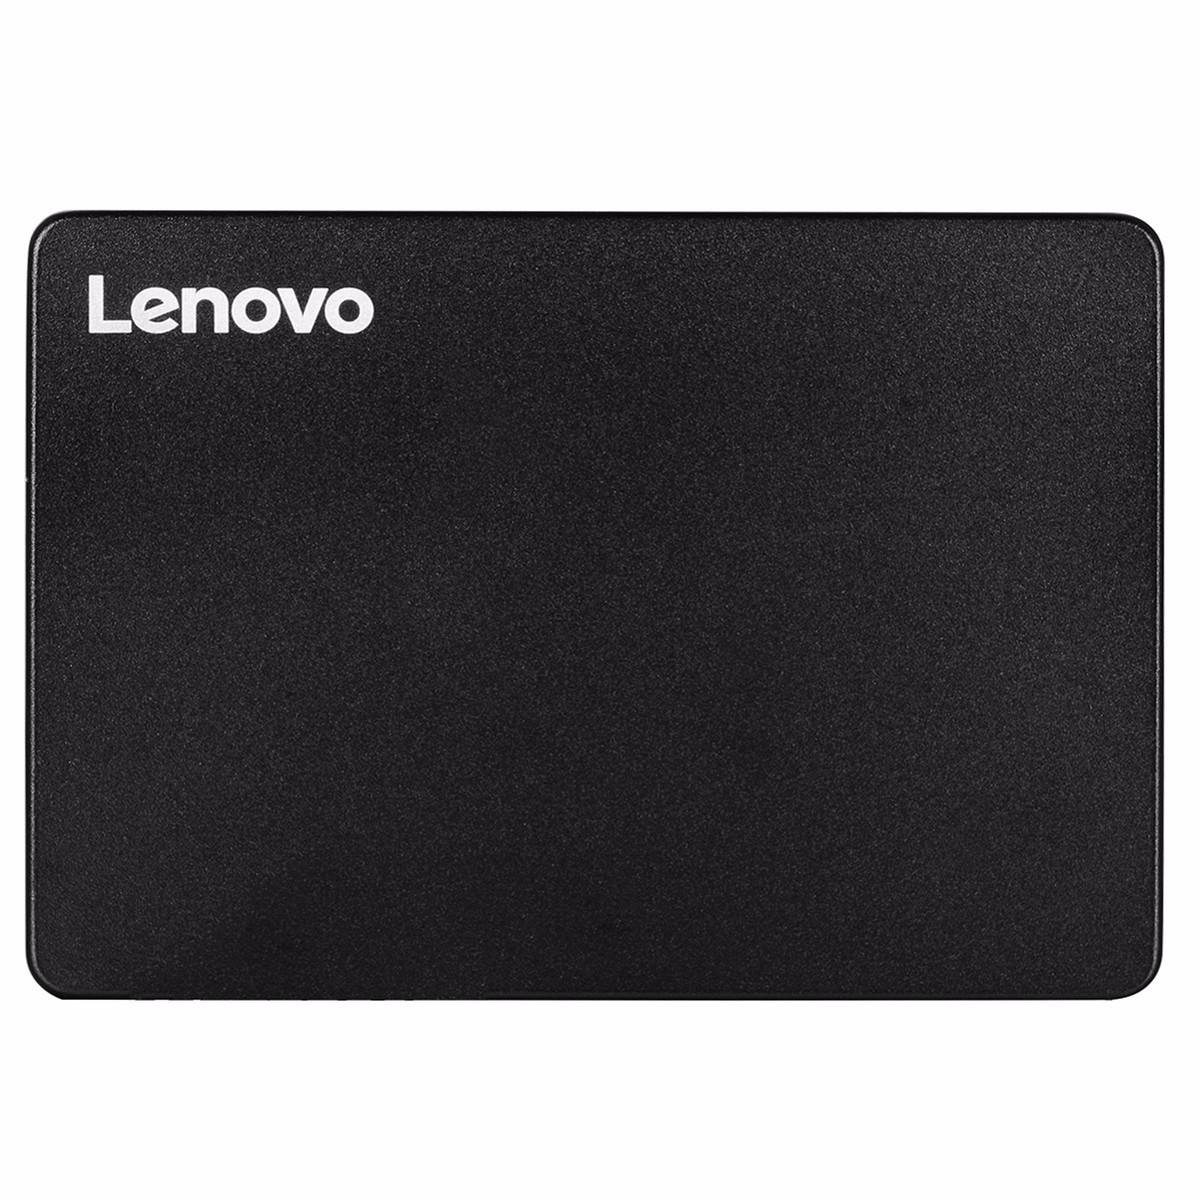 Wholesale Lenovo Solid State Drive SL700 120G 240GB for Laptop and Desktop SSD 2.5 inch SATAIII SSD Brand New 3 year warranty kingfast ssd 128gb sata iii 6gb s 2 5 inch solid state drive 7mm internal ssd 128 cache hard disk for laptop disktop